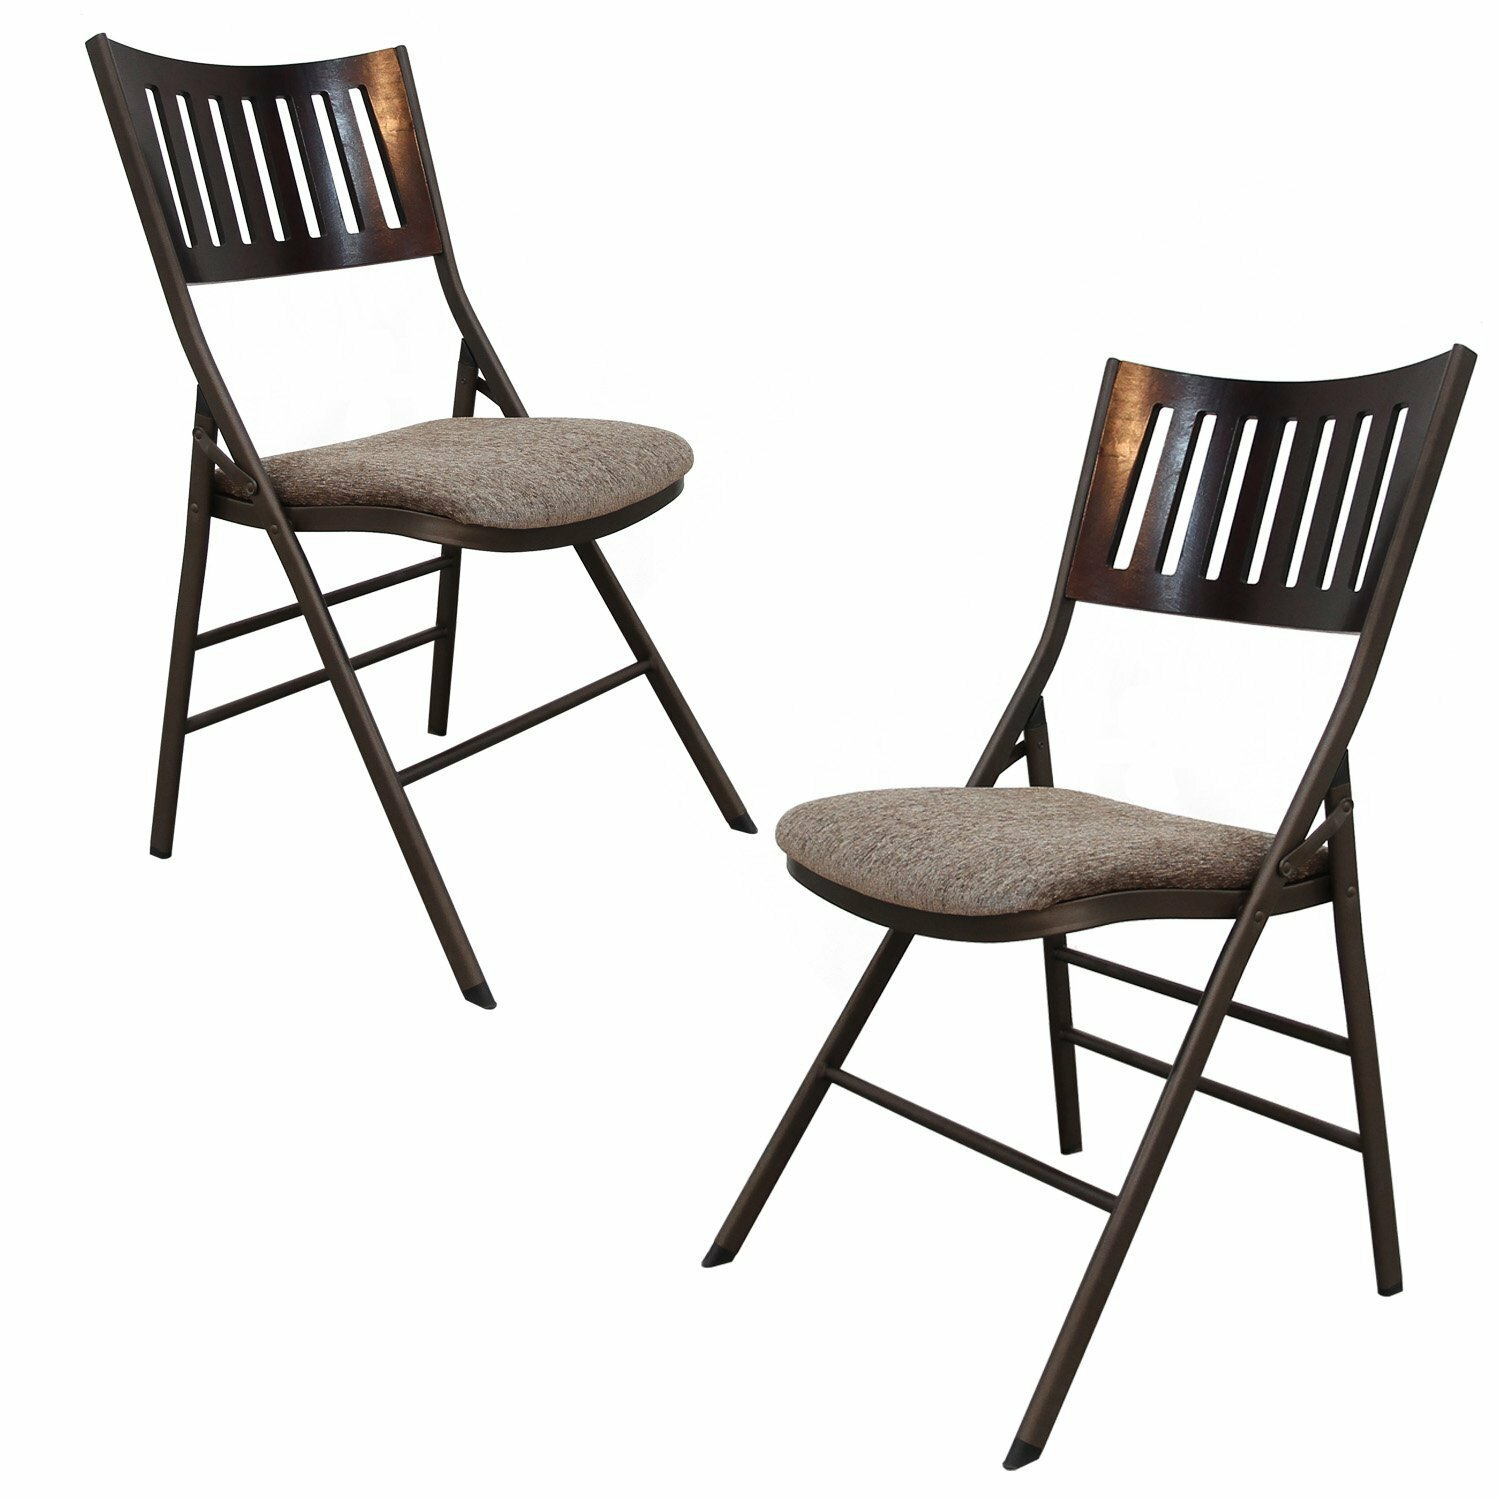 AdecoTrading Tubular Steel Folding Chair & Reviews